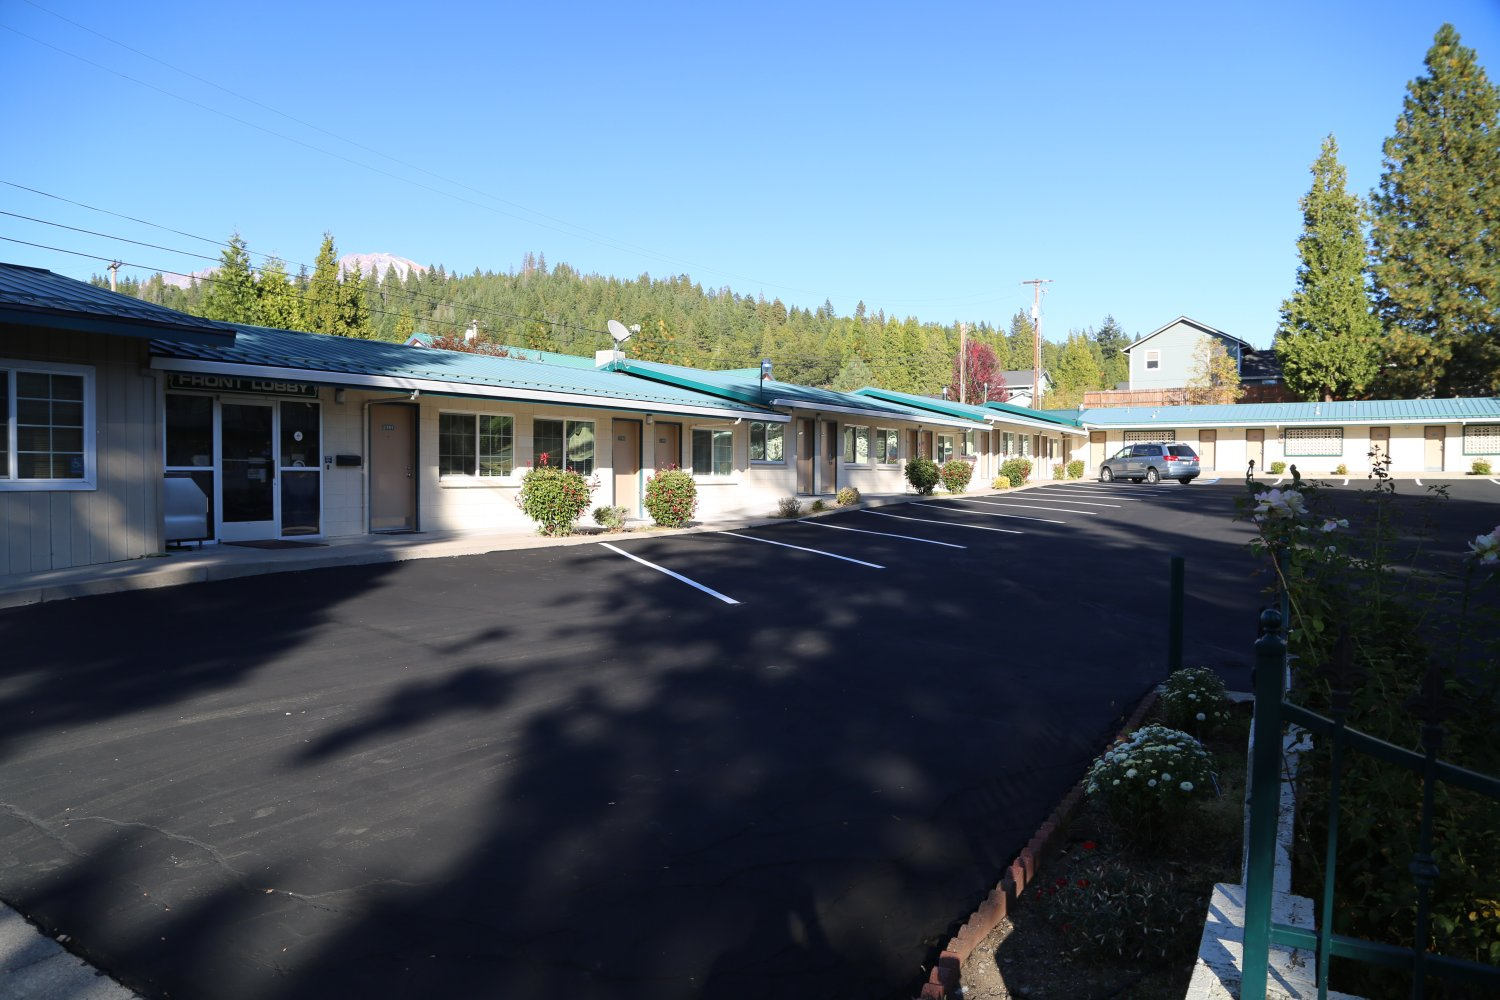 A1 Choice Inn Is Located At 1340 S Mt Shasta Blvd Family Owned And Operated By An Elderly Very Basic Accommodation All Rooms Are Pet Free